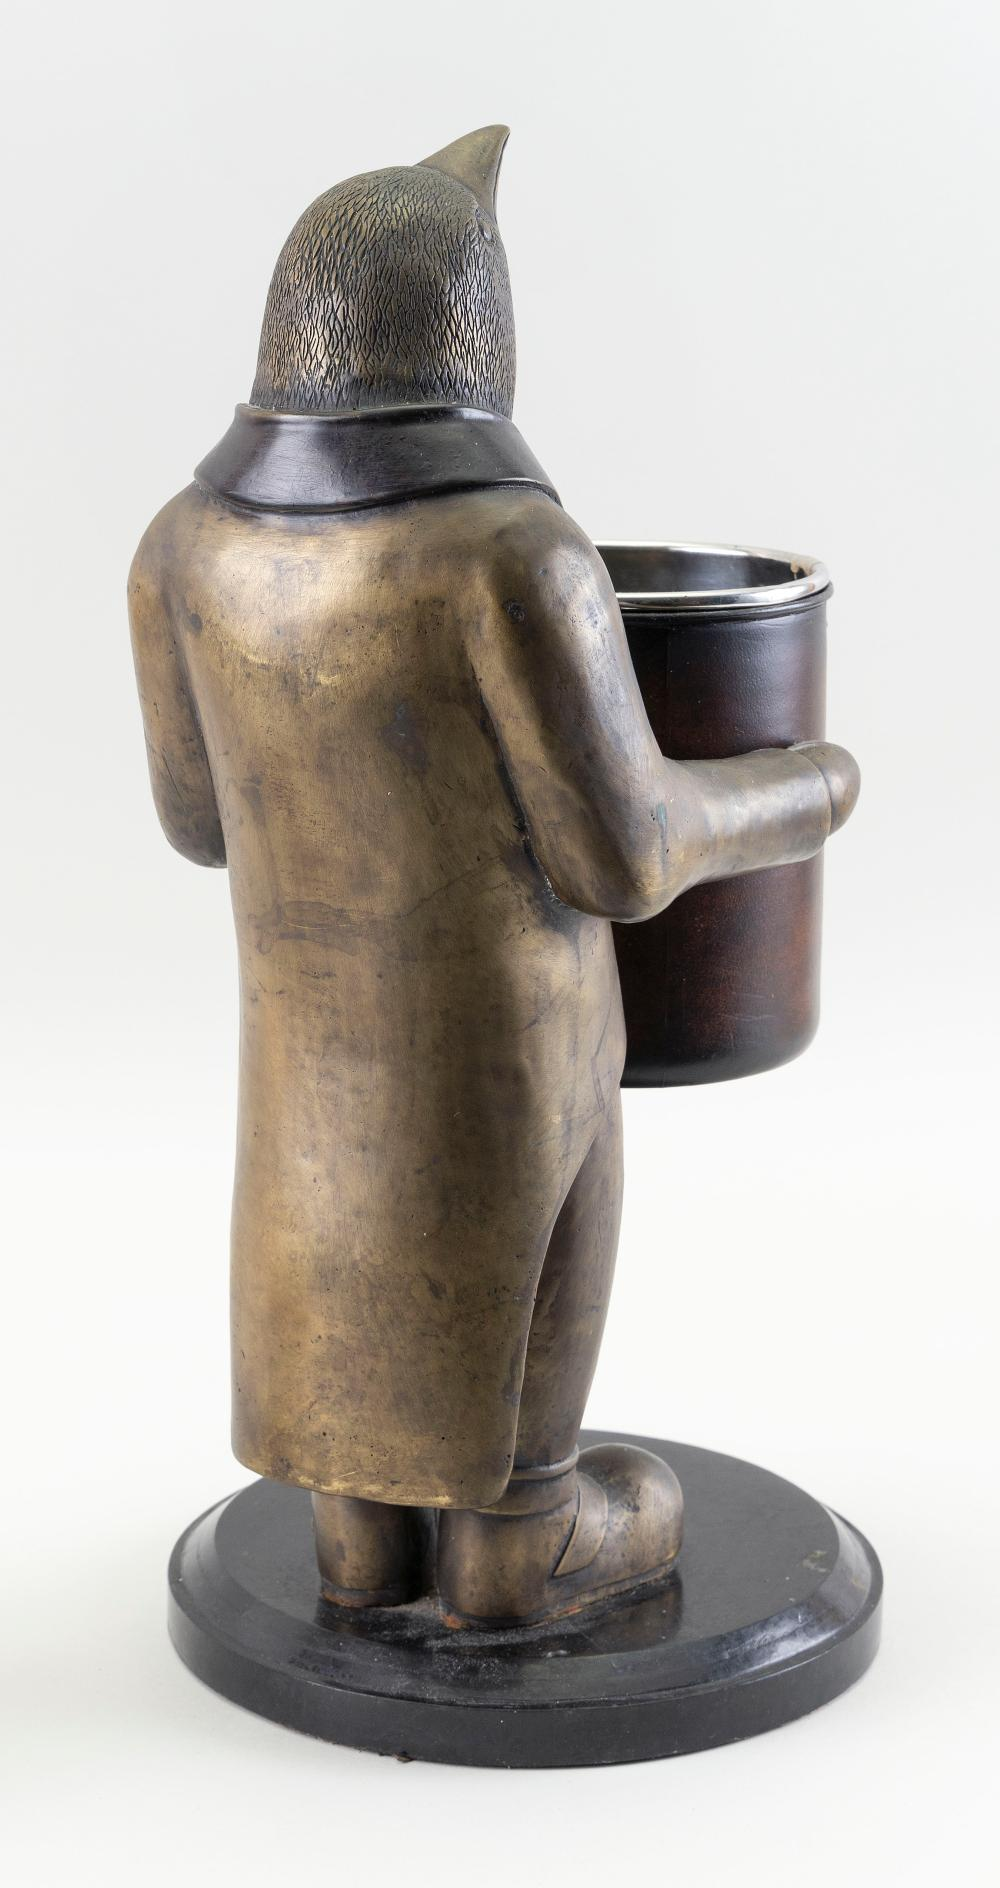 """WINE BOTTLE HOLDER IN THE FORM OF A PENGUIN Late 20th Century Height 17"""". Inside diameter of holder is 4.125""""."""